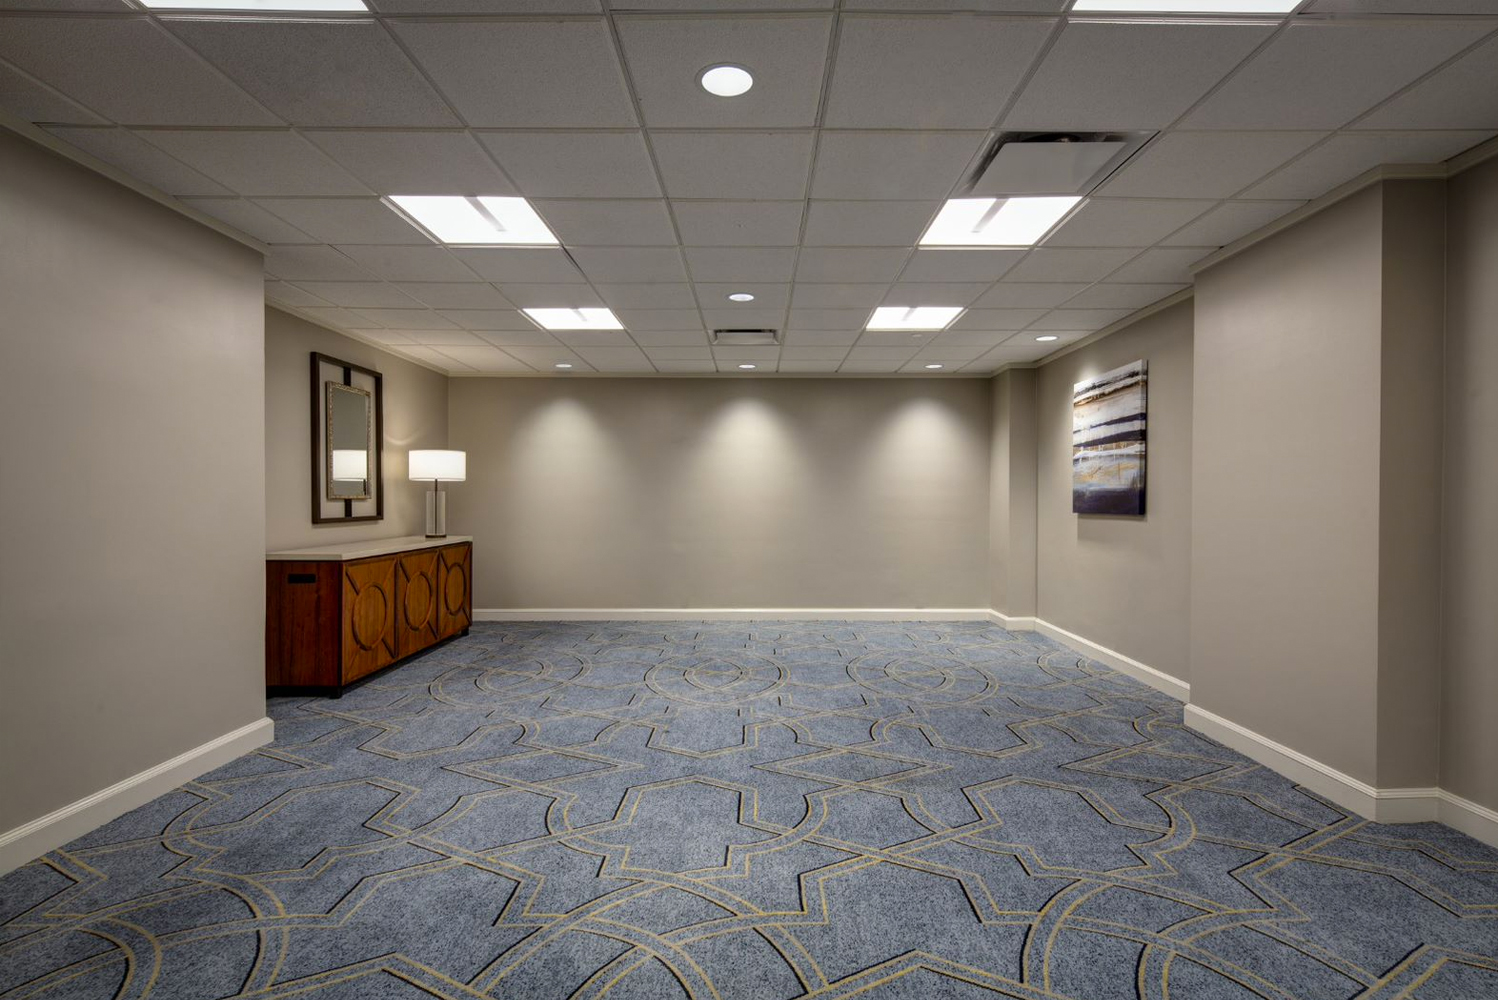 The 1,622-room Hilton New Orleans Riverside, completed a $5 million renovation to its third floor meeting spaces.